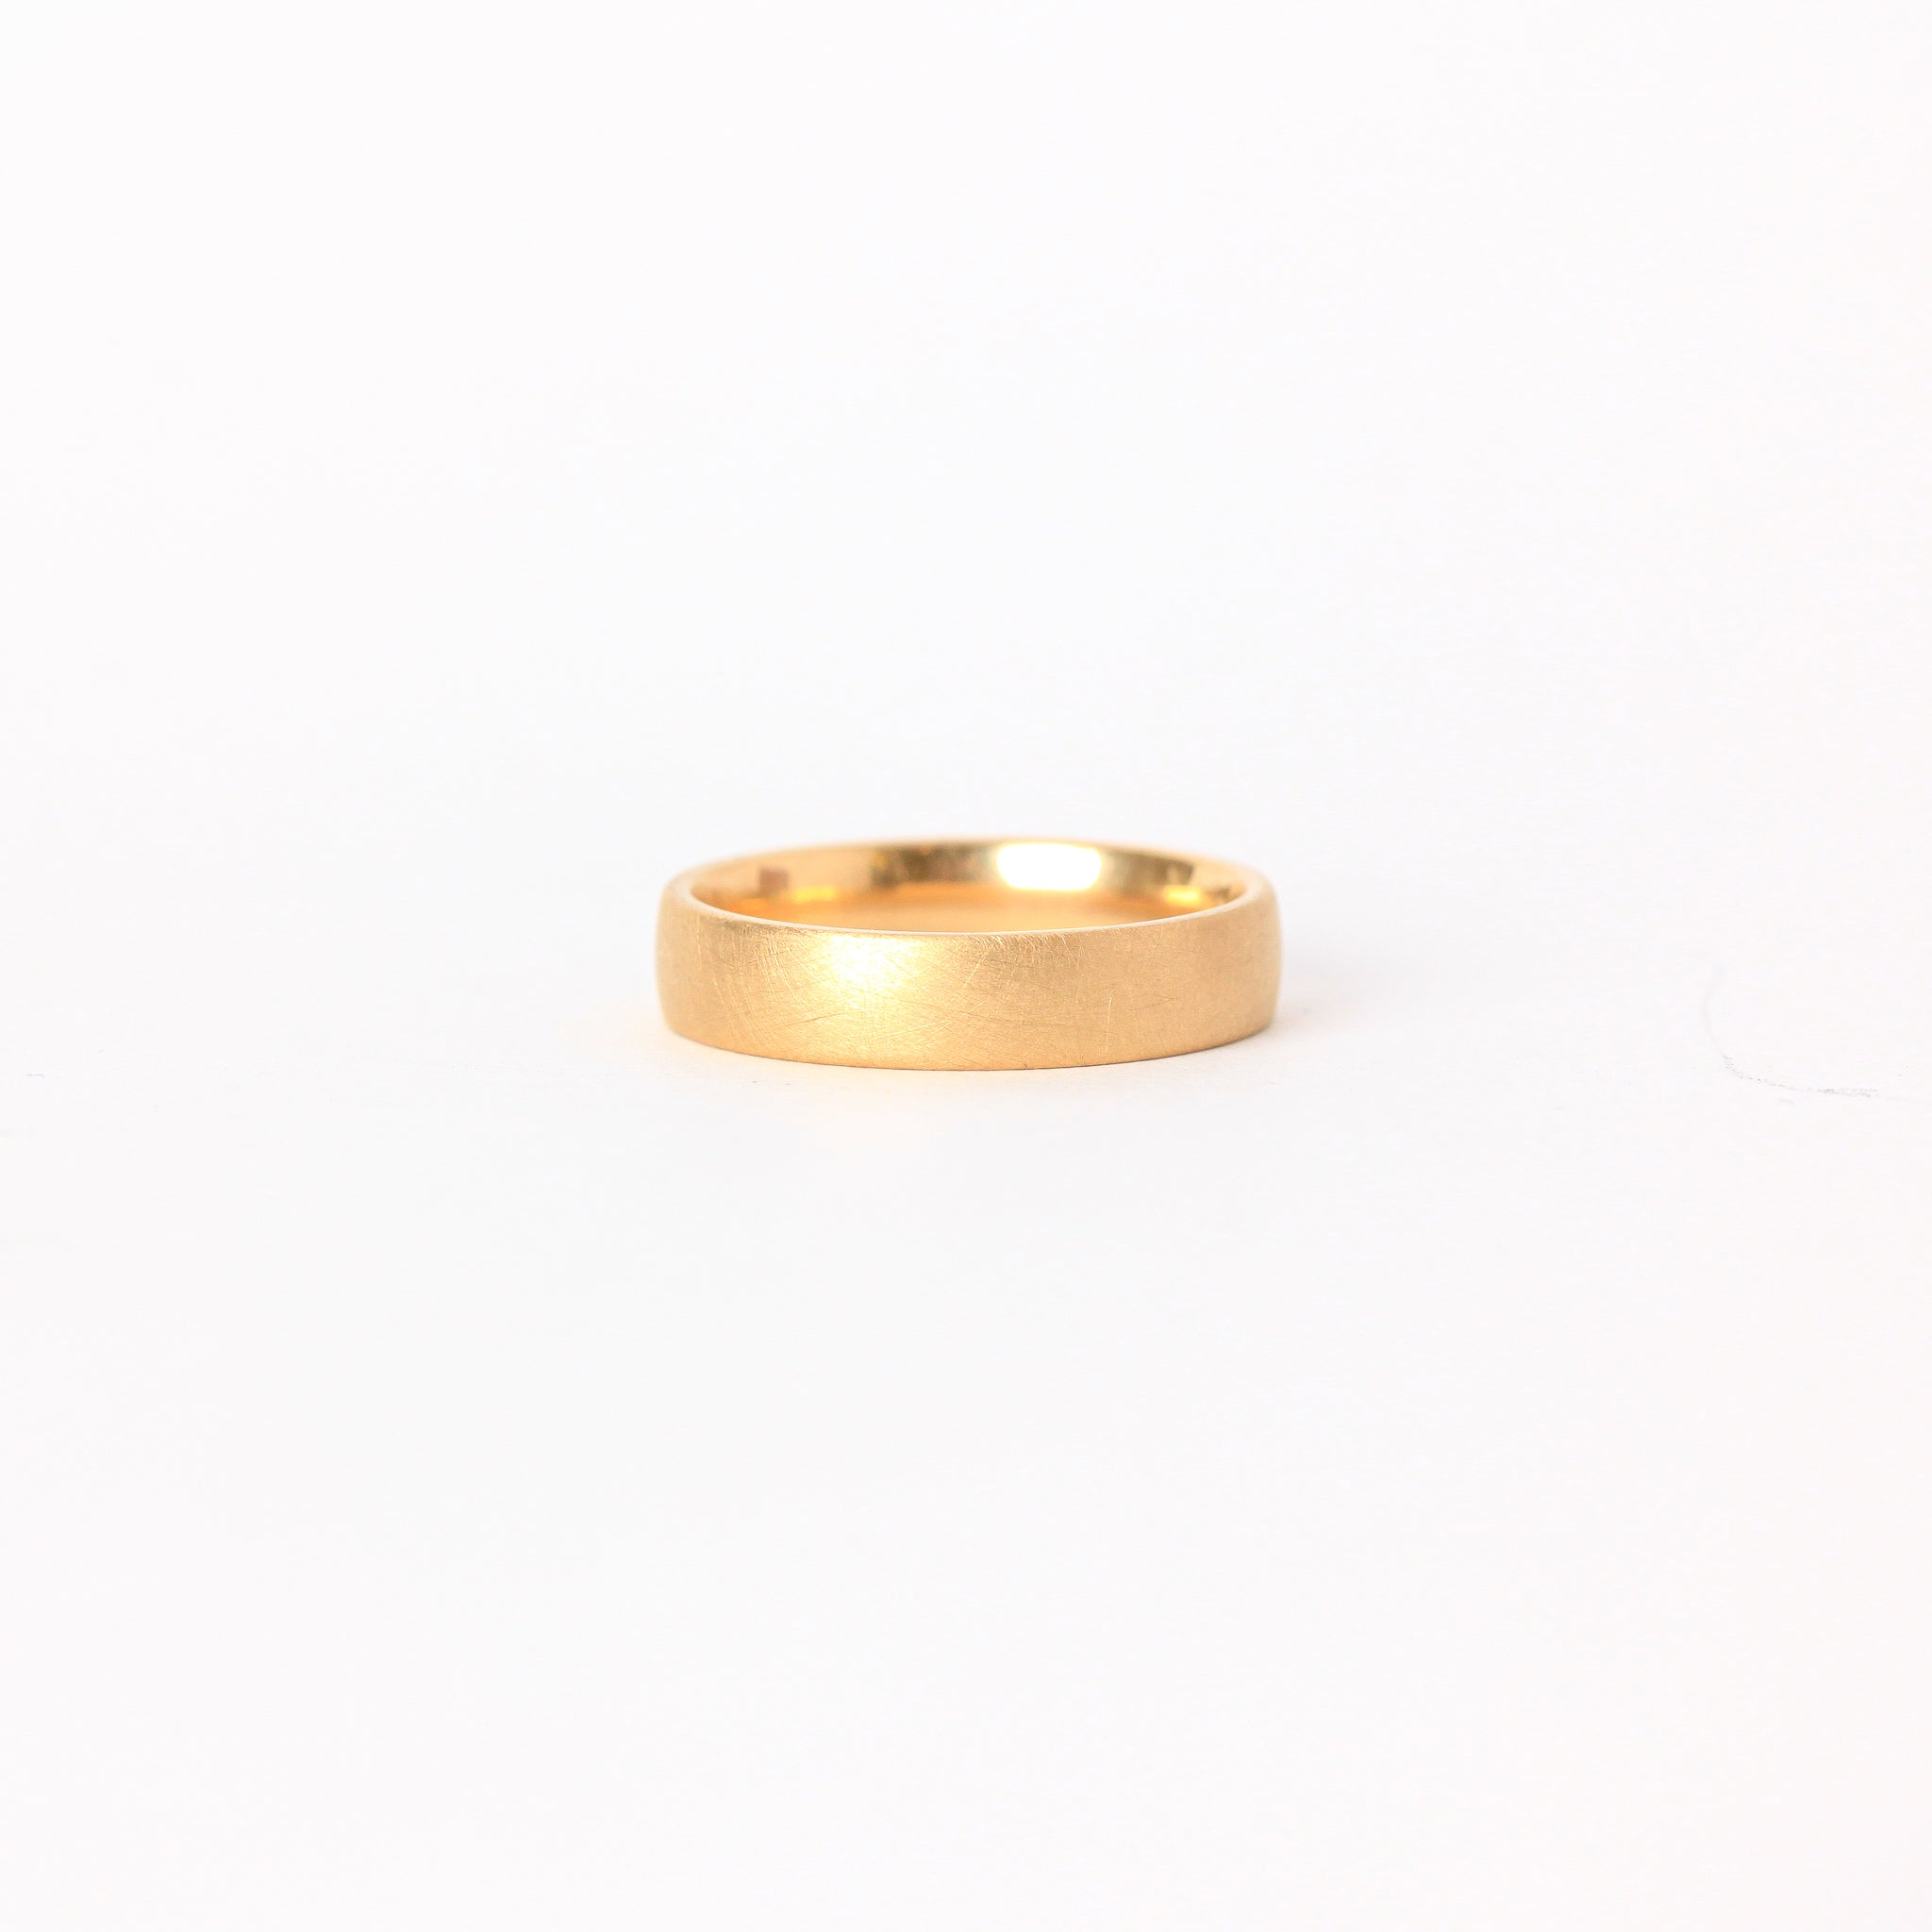 Classic mens 18ct yellow gold wedding band with matte finish, Mens wedding band 18ct yellow and rose gold, hand carved textured finish, Custom bespoke handmade jewellery.